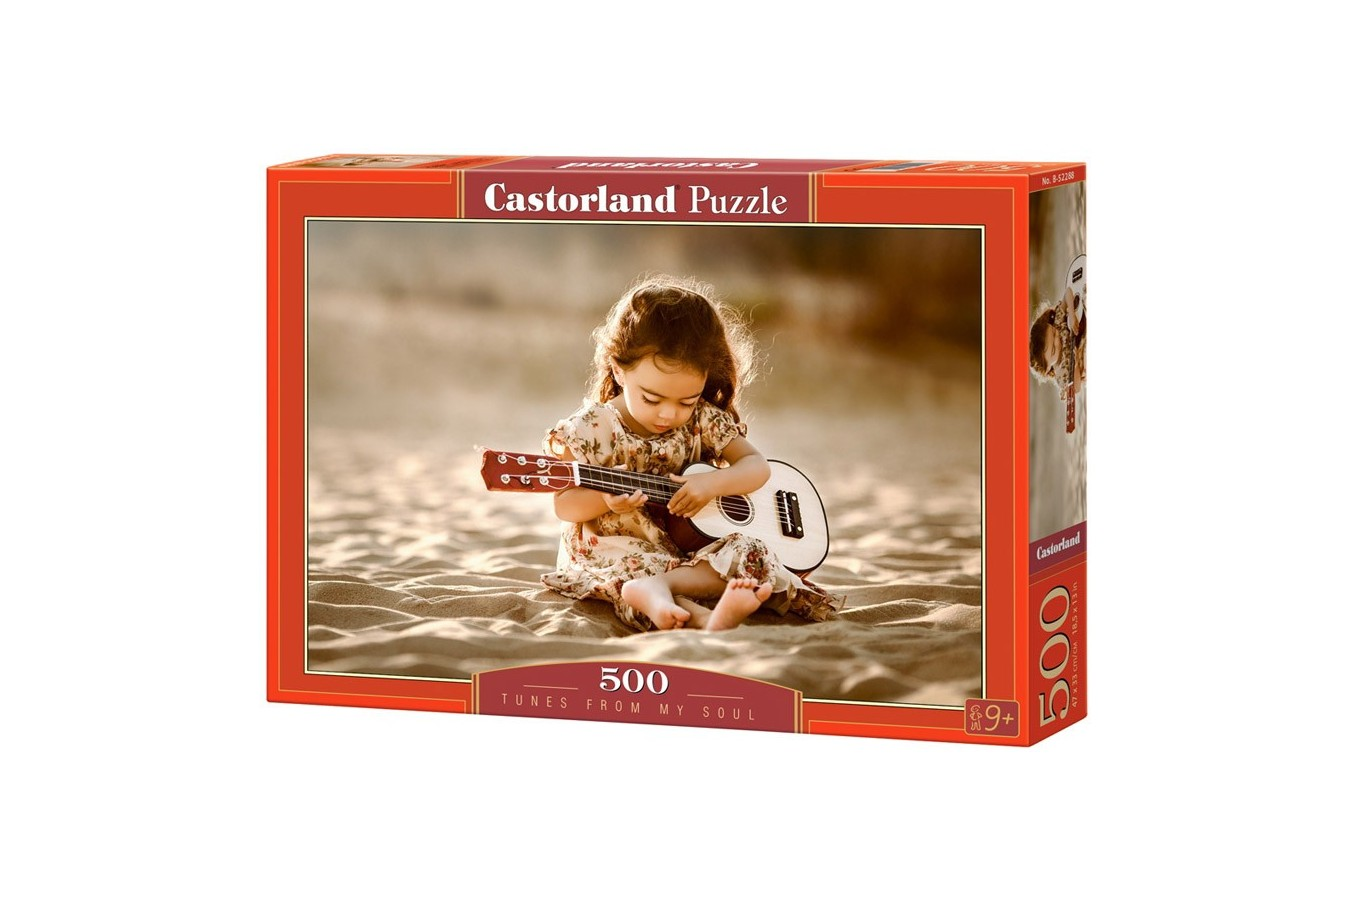 Puzzle Castorland - Tunes from My Soul, 500 piese